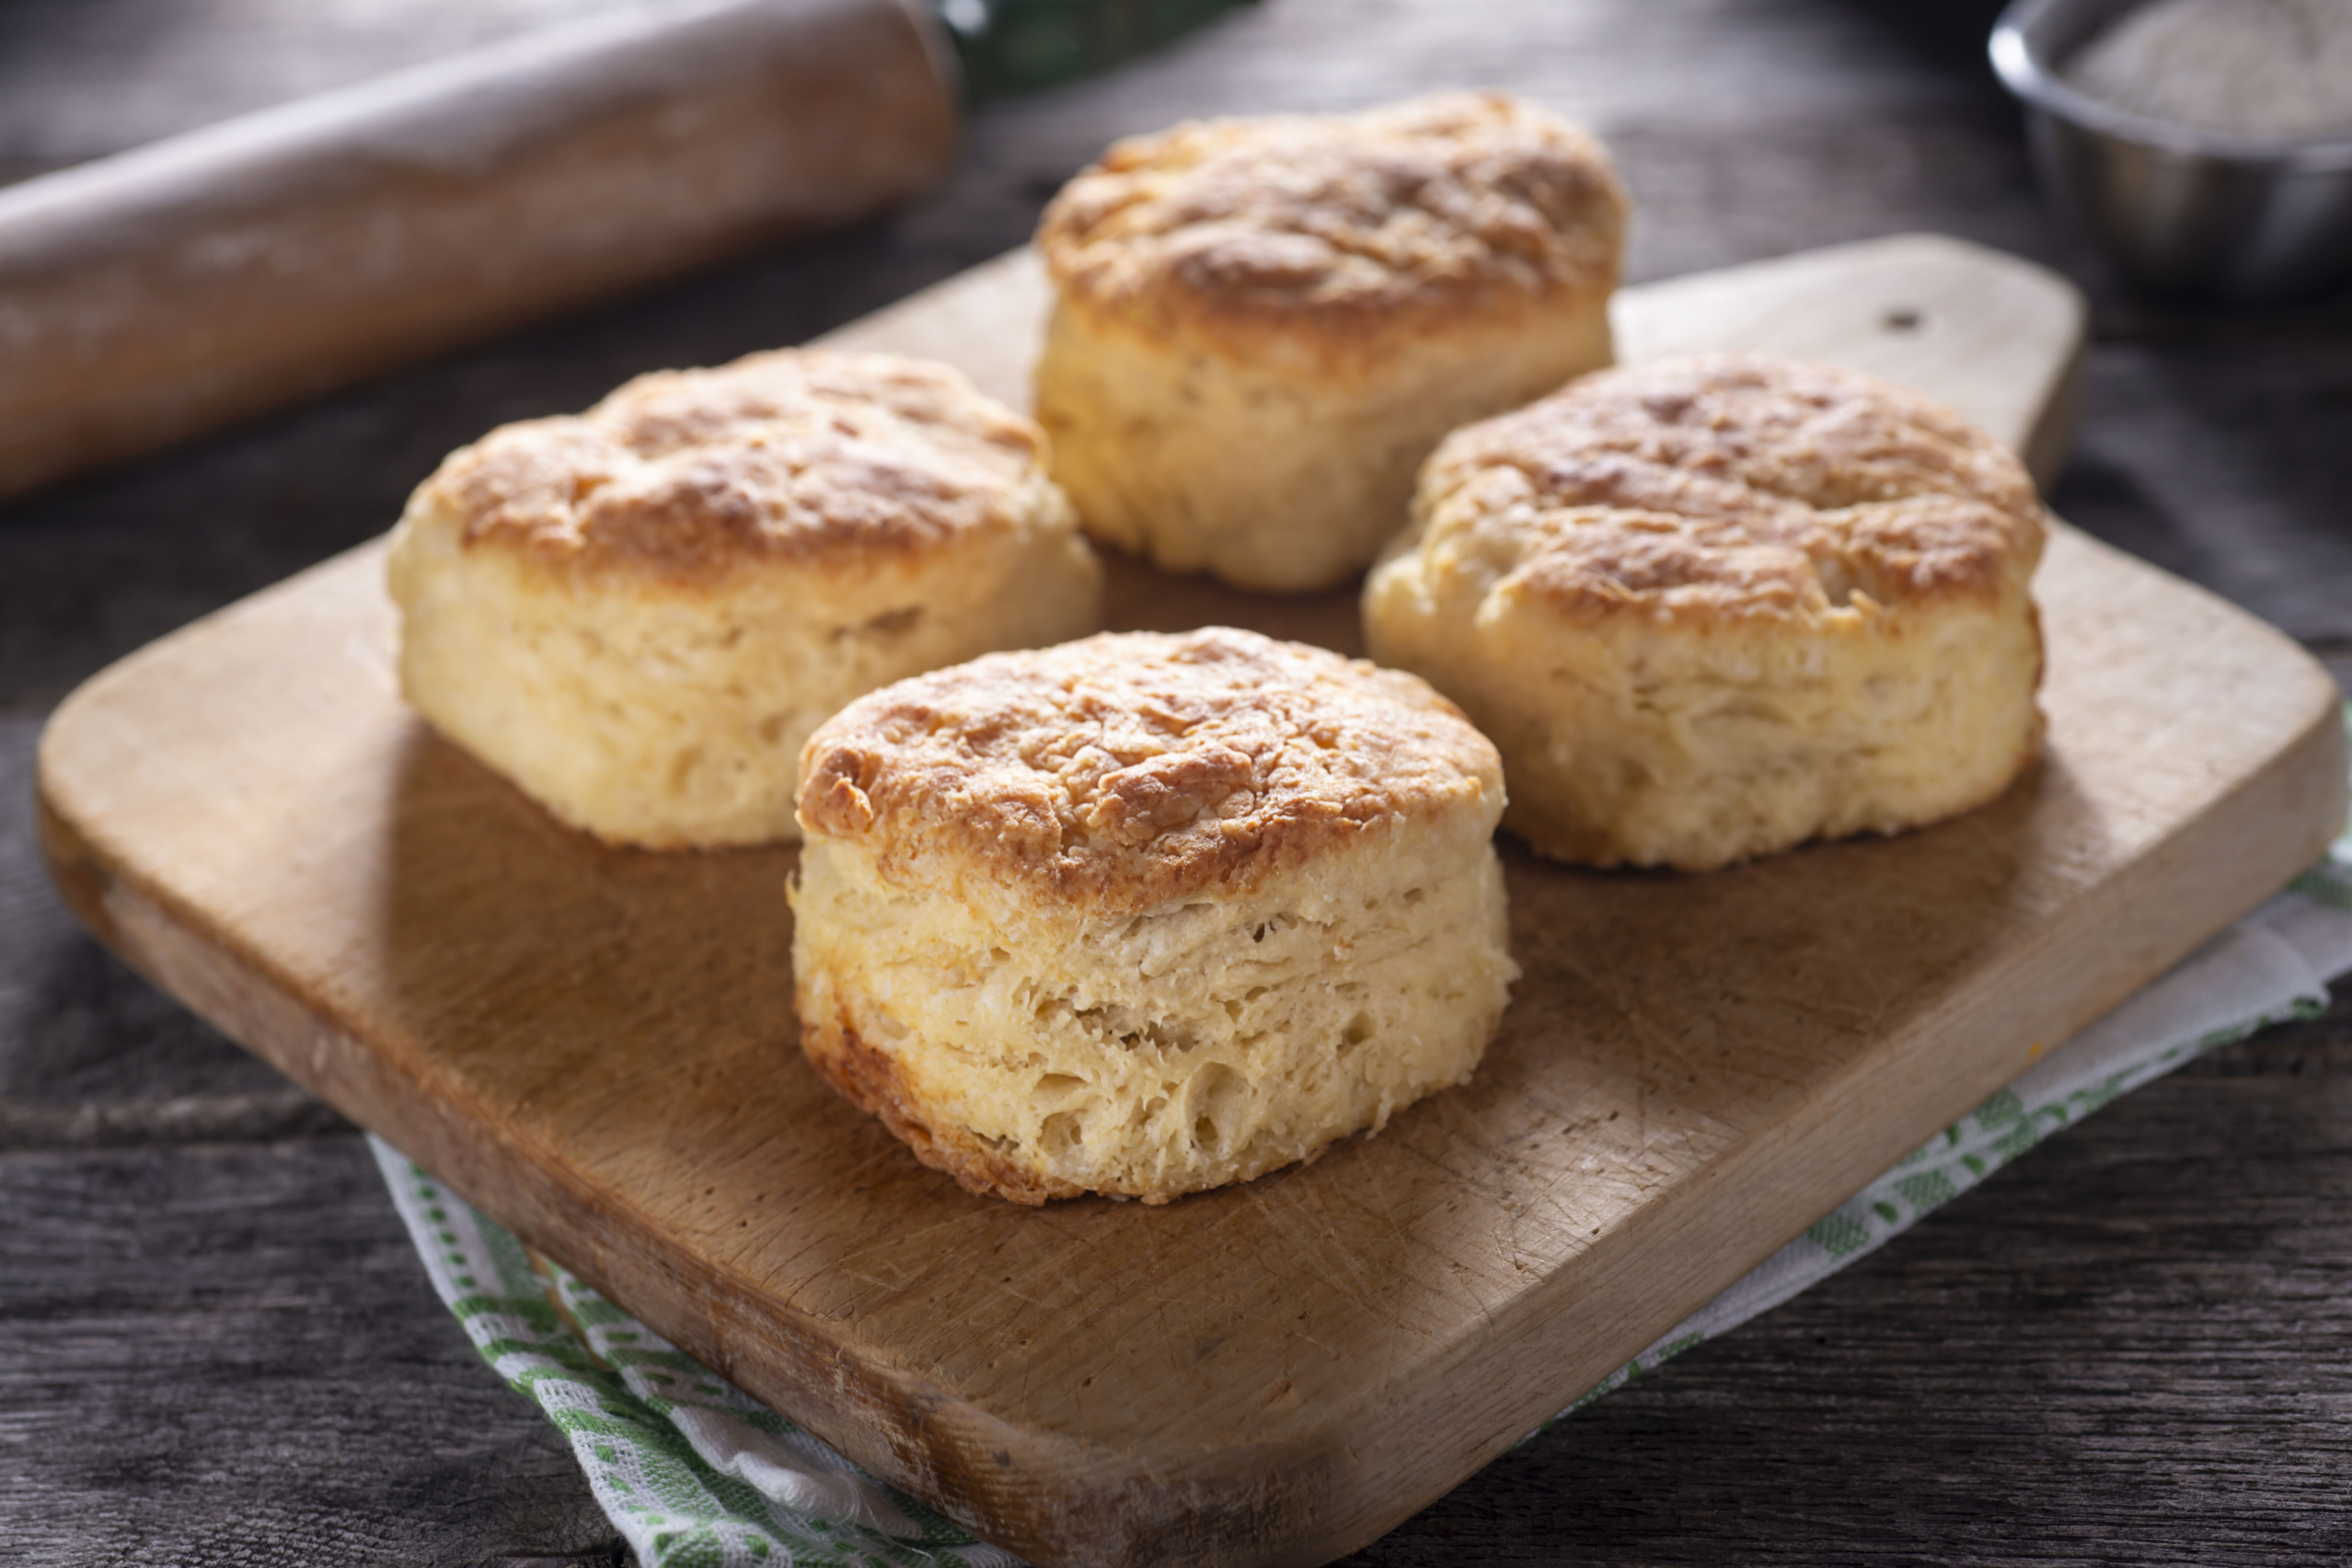 The Most Genius Use for Stale Biscuits